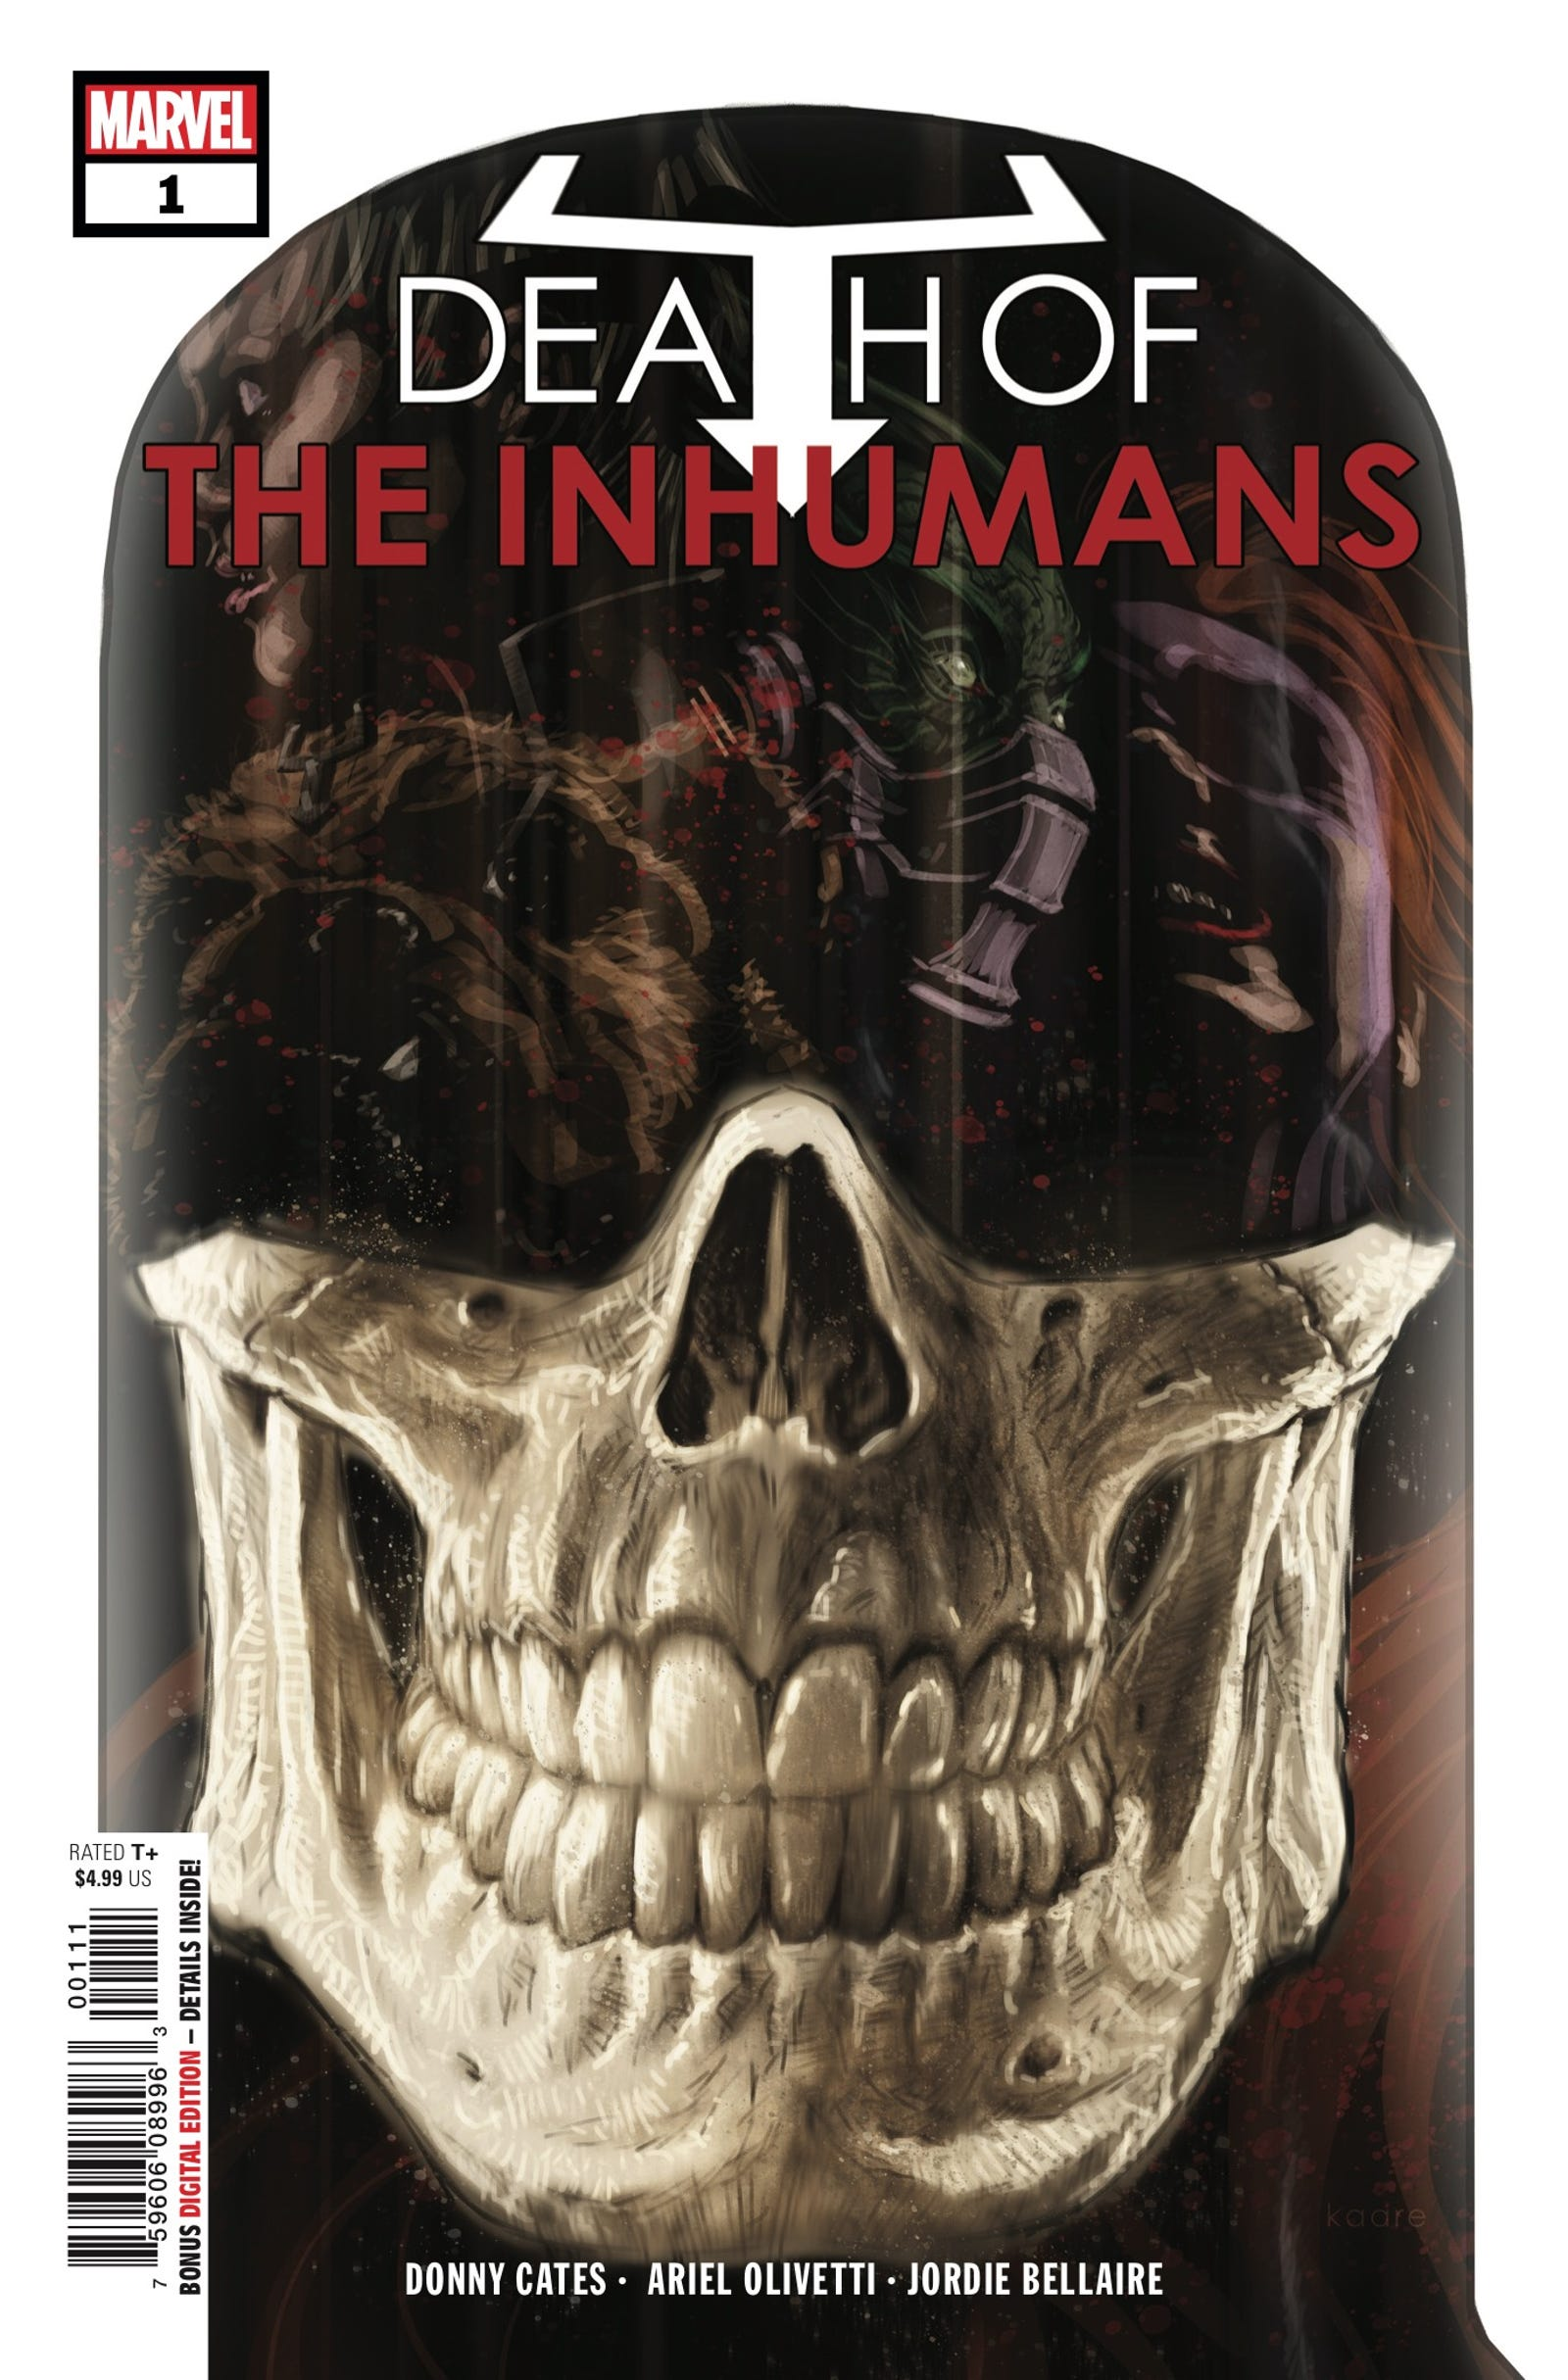 Cover by Kaare Andrews